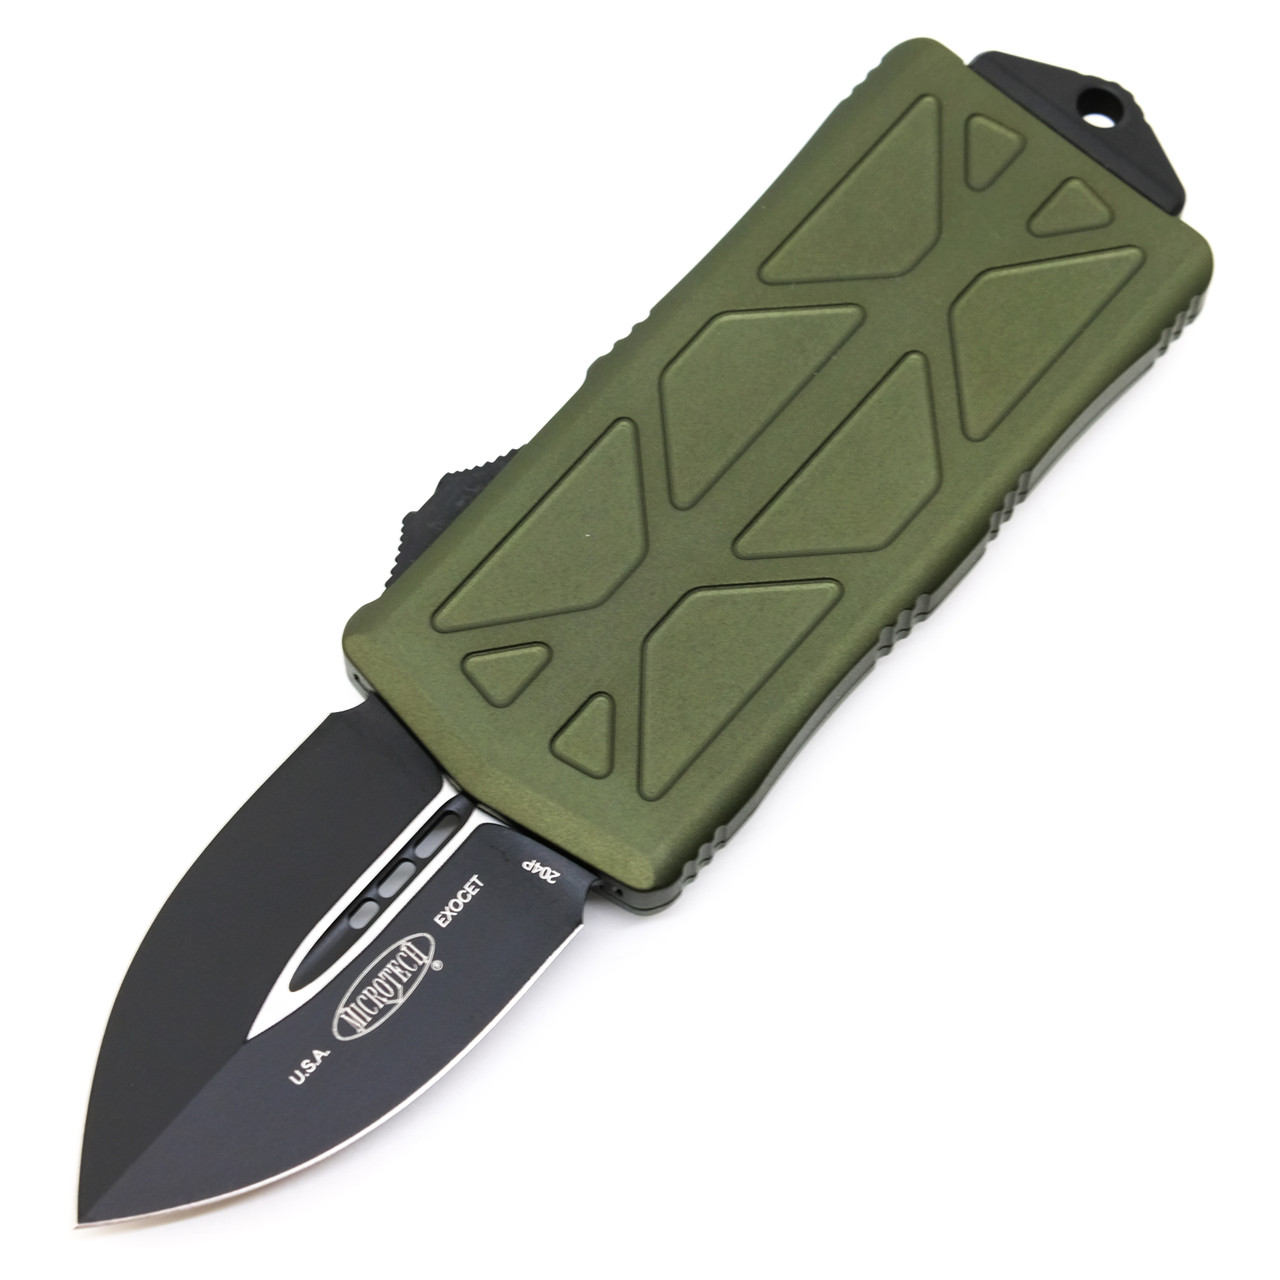 Microtech 157-1 OD Green Exocet Standard